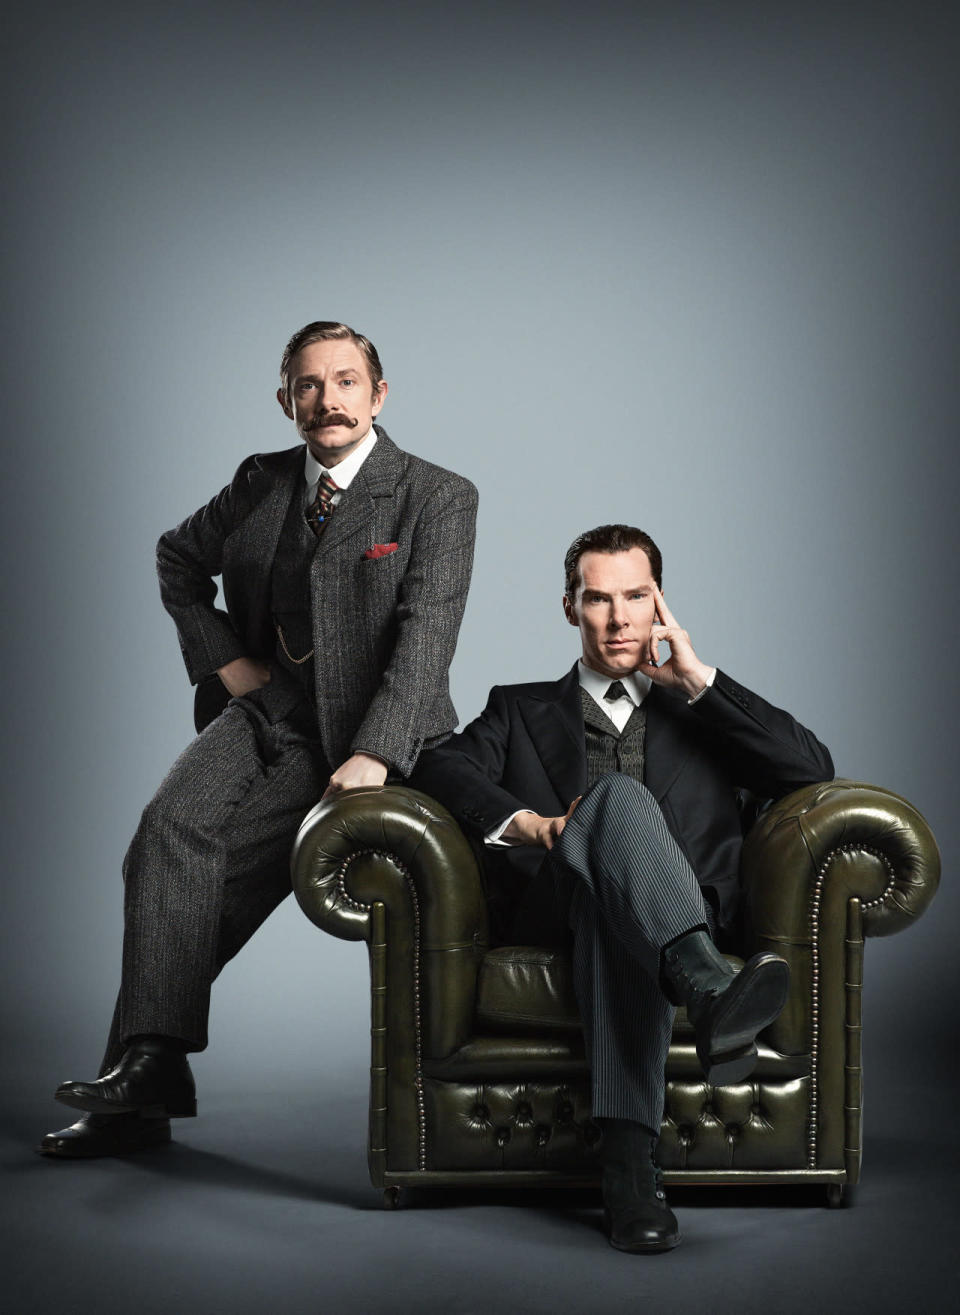 <p>This was the first image released of Freeman and Cumberbatch in period garb for the special. </p>